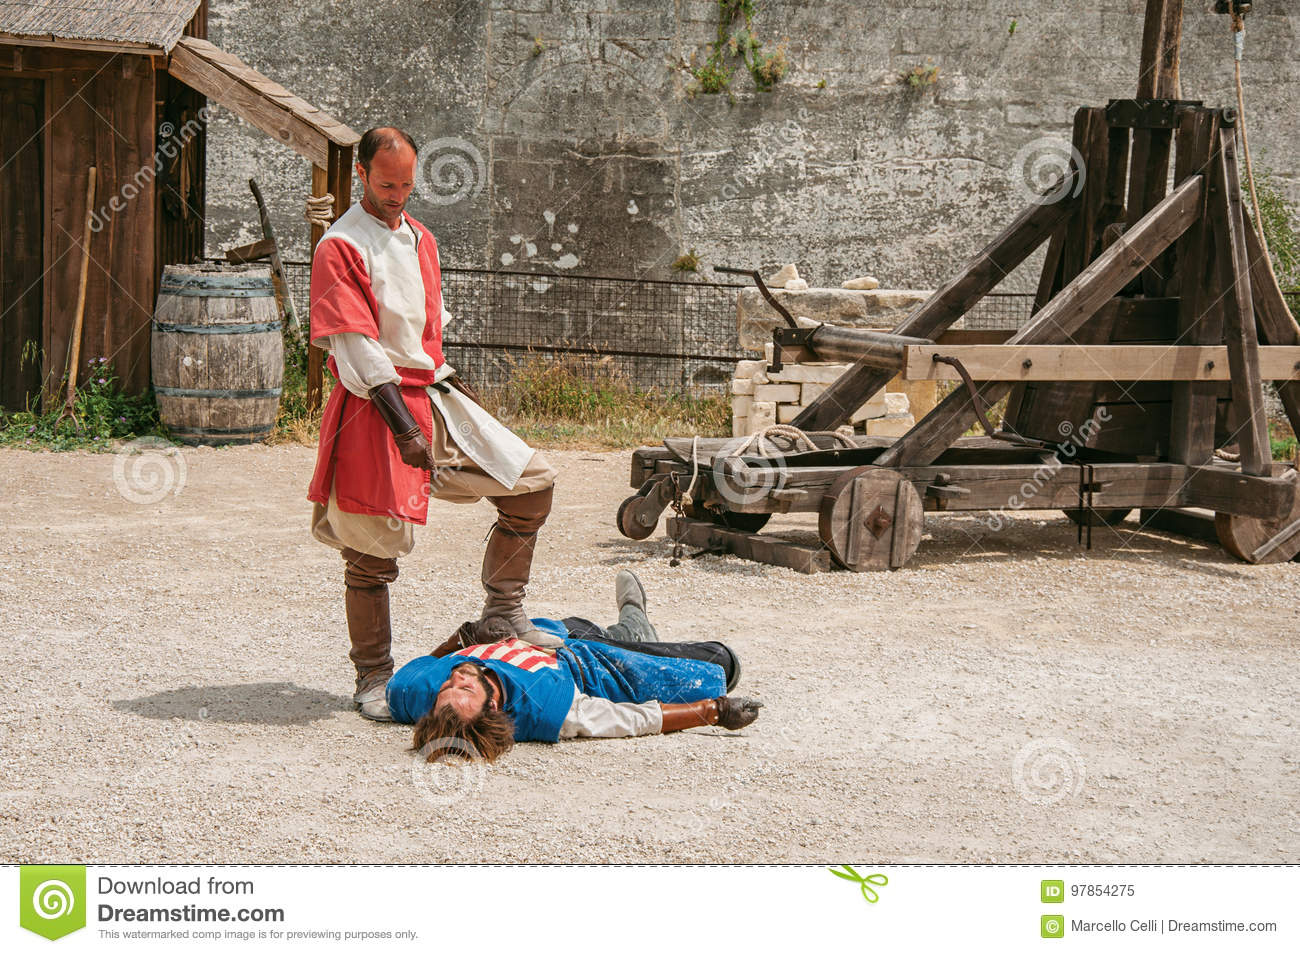 Actors doing a theatrical staging as medieval fighters in the castle of Baux-de-Provence.